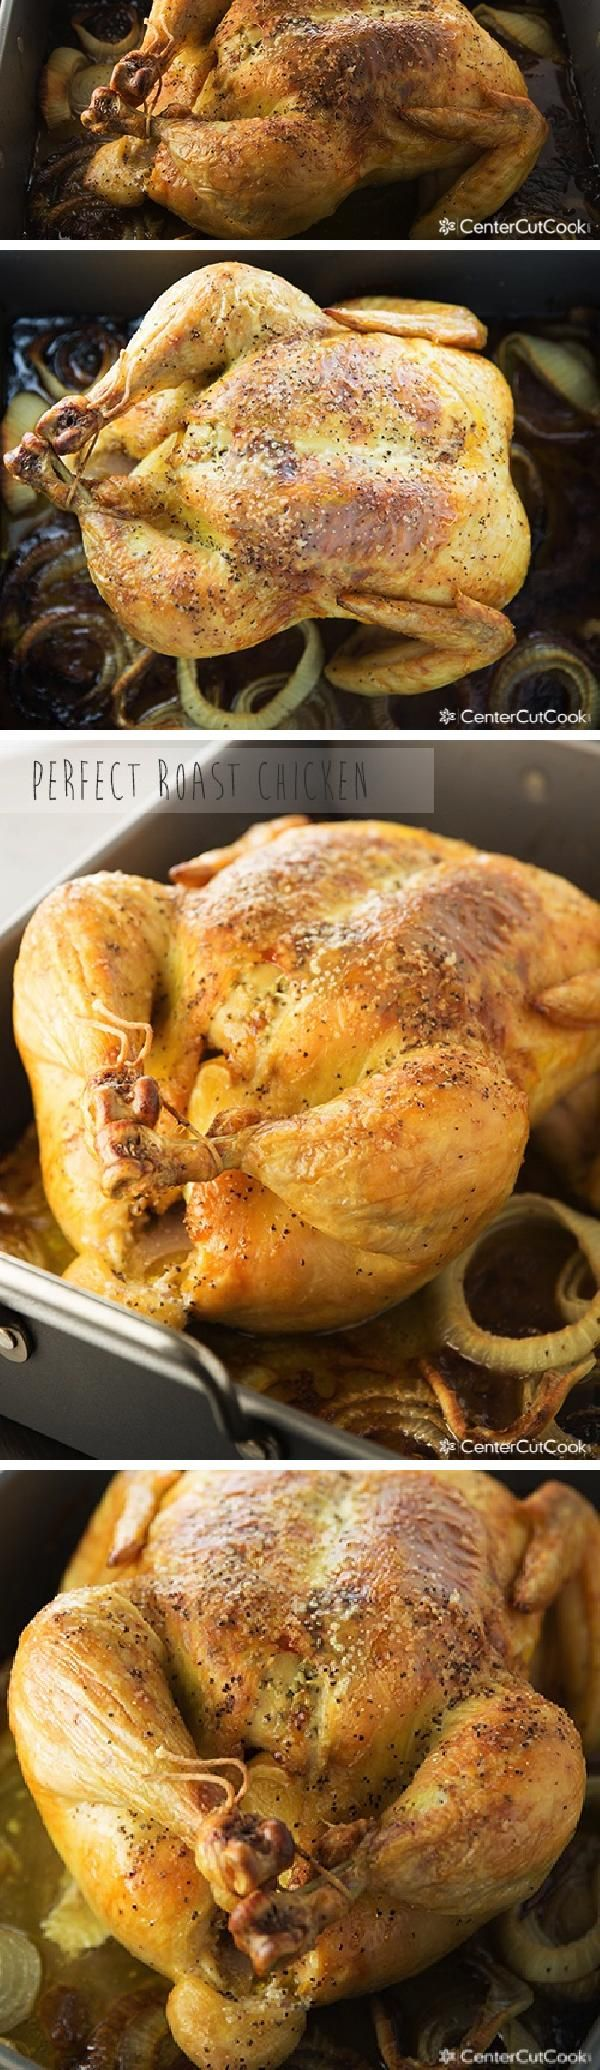 This is my all-time favorite recipe for roast CHICKEN with hints of LEMON and GARLIC. Tender, savory, delicious!